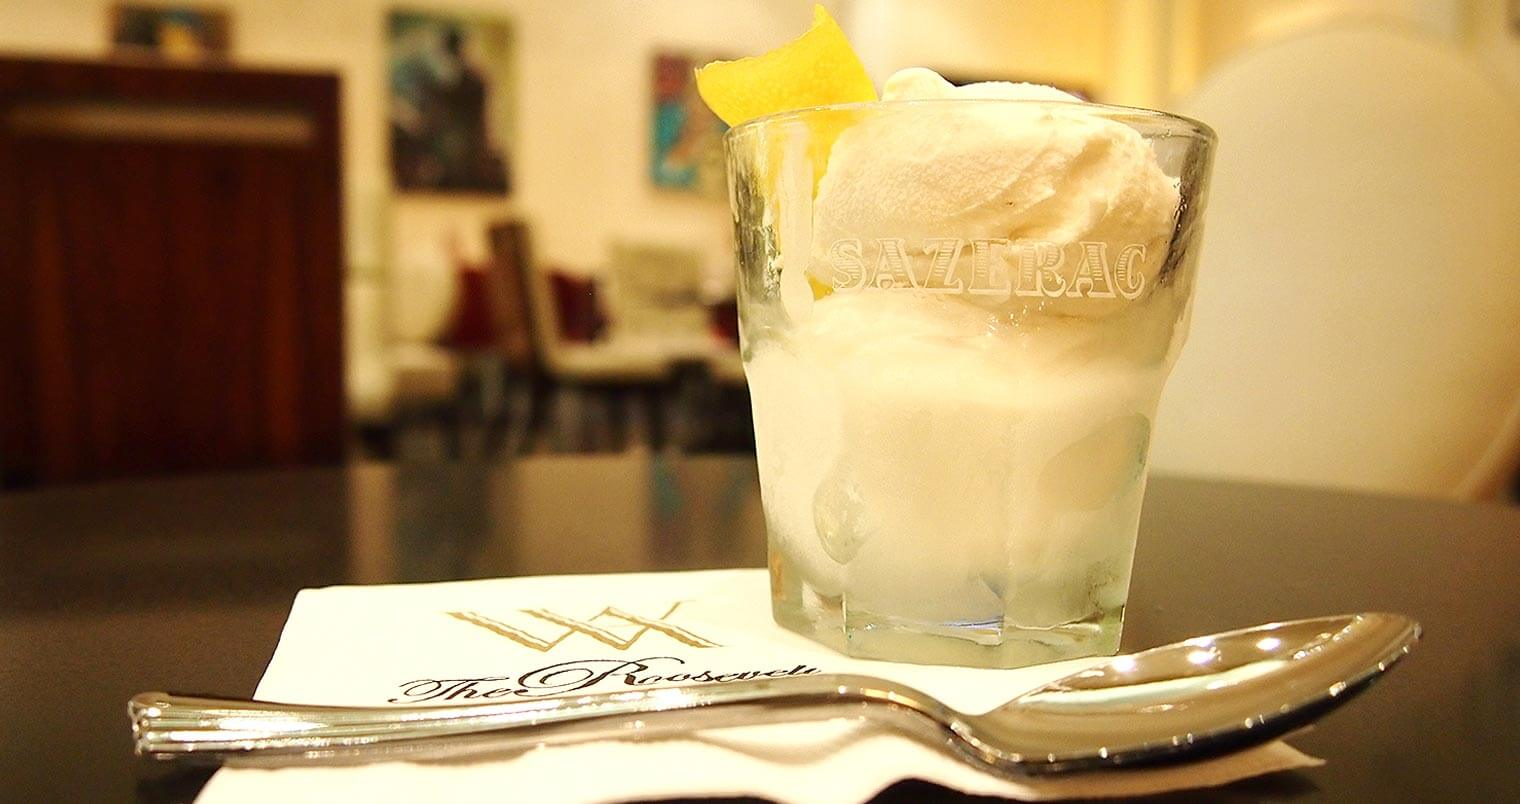 Sazerac Cocktail Ice Cream Now Being Served in NOLA, featured image